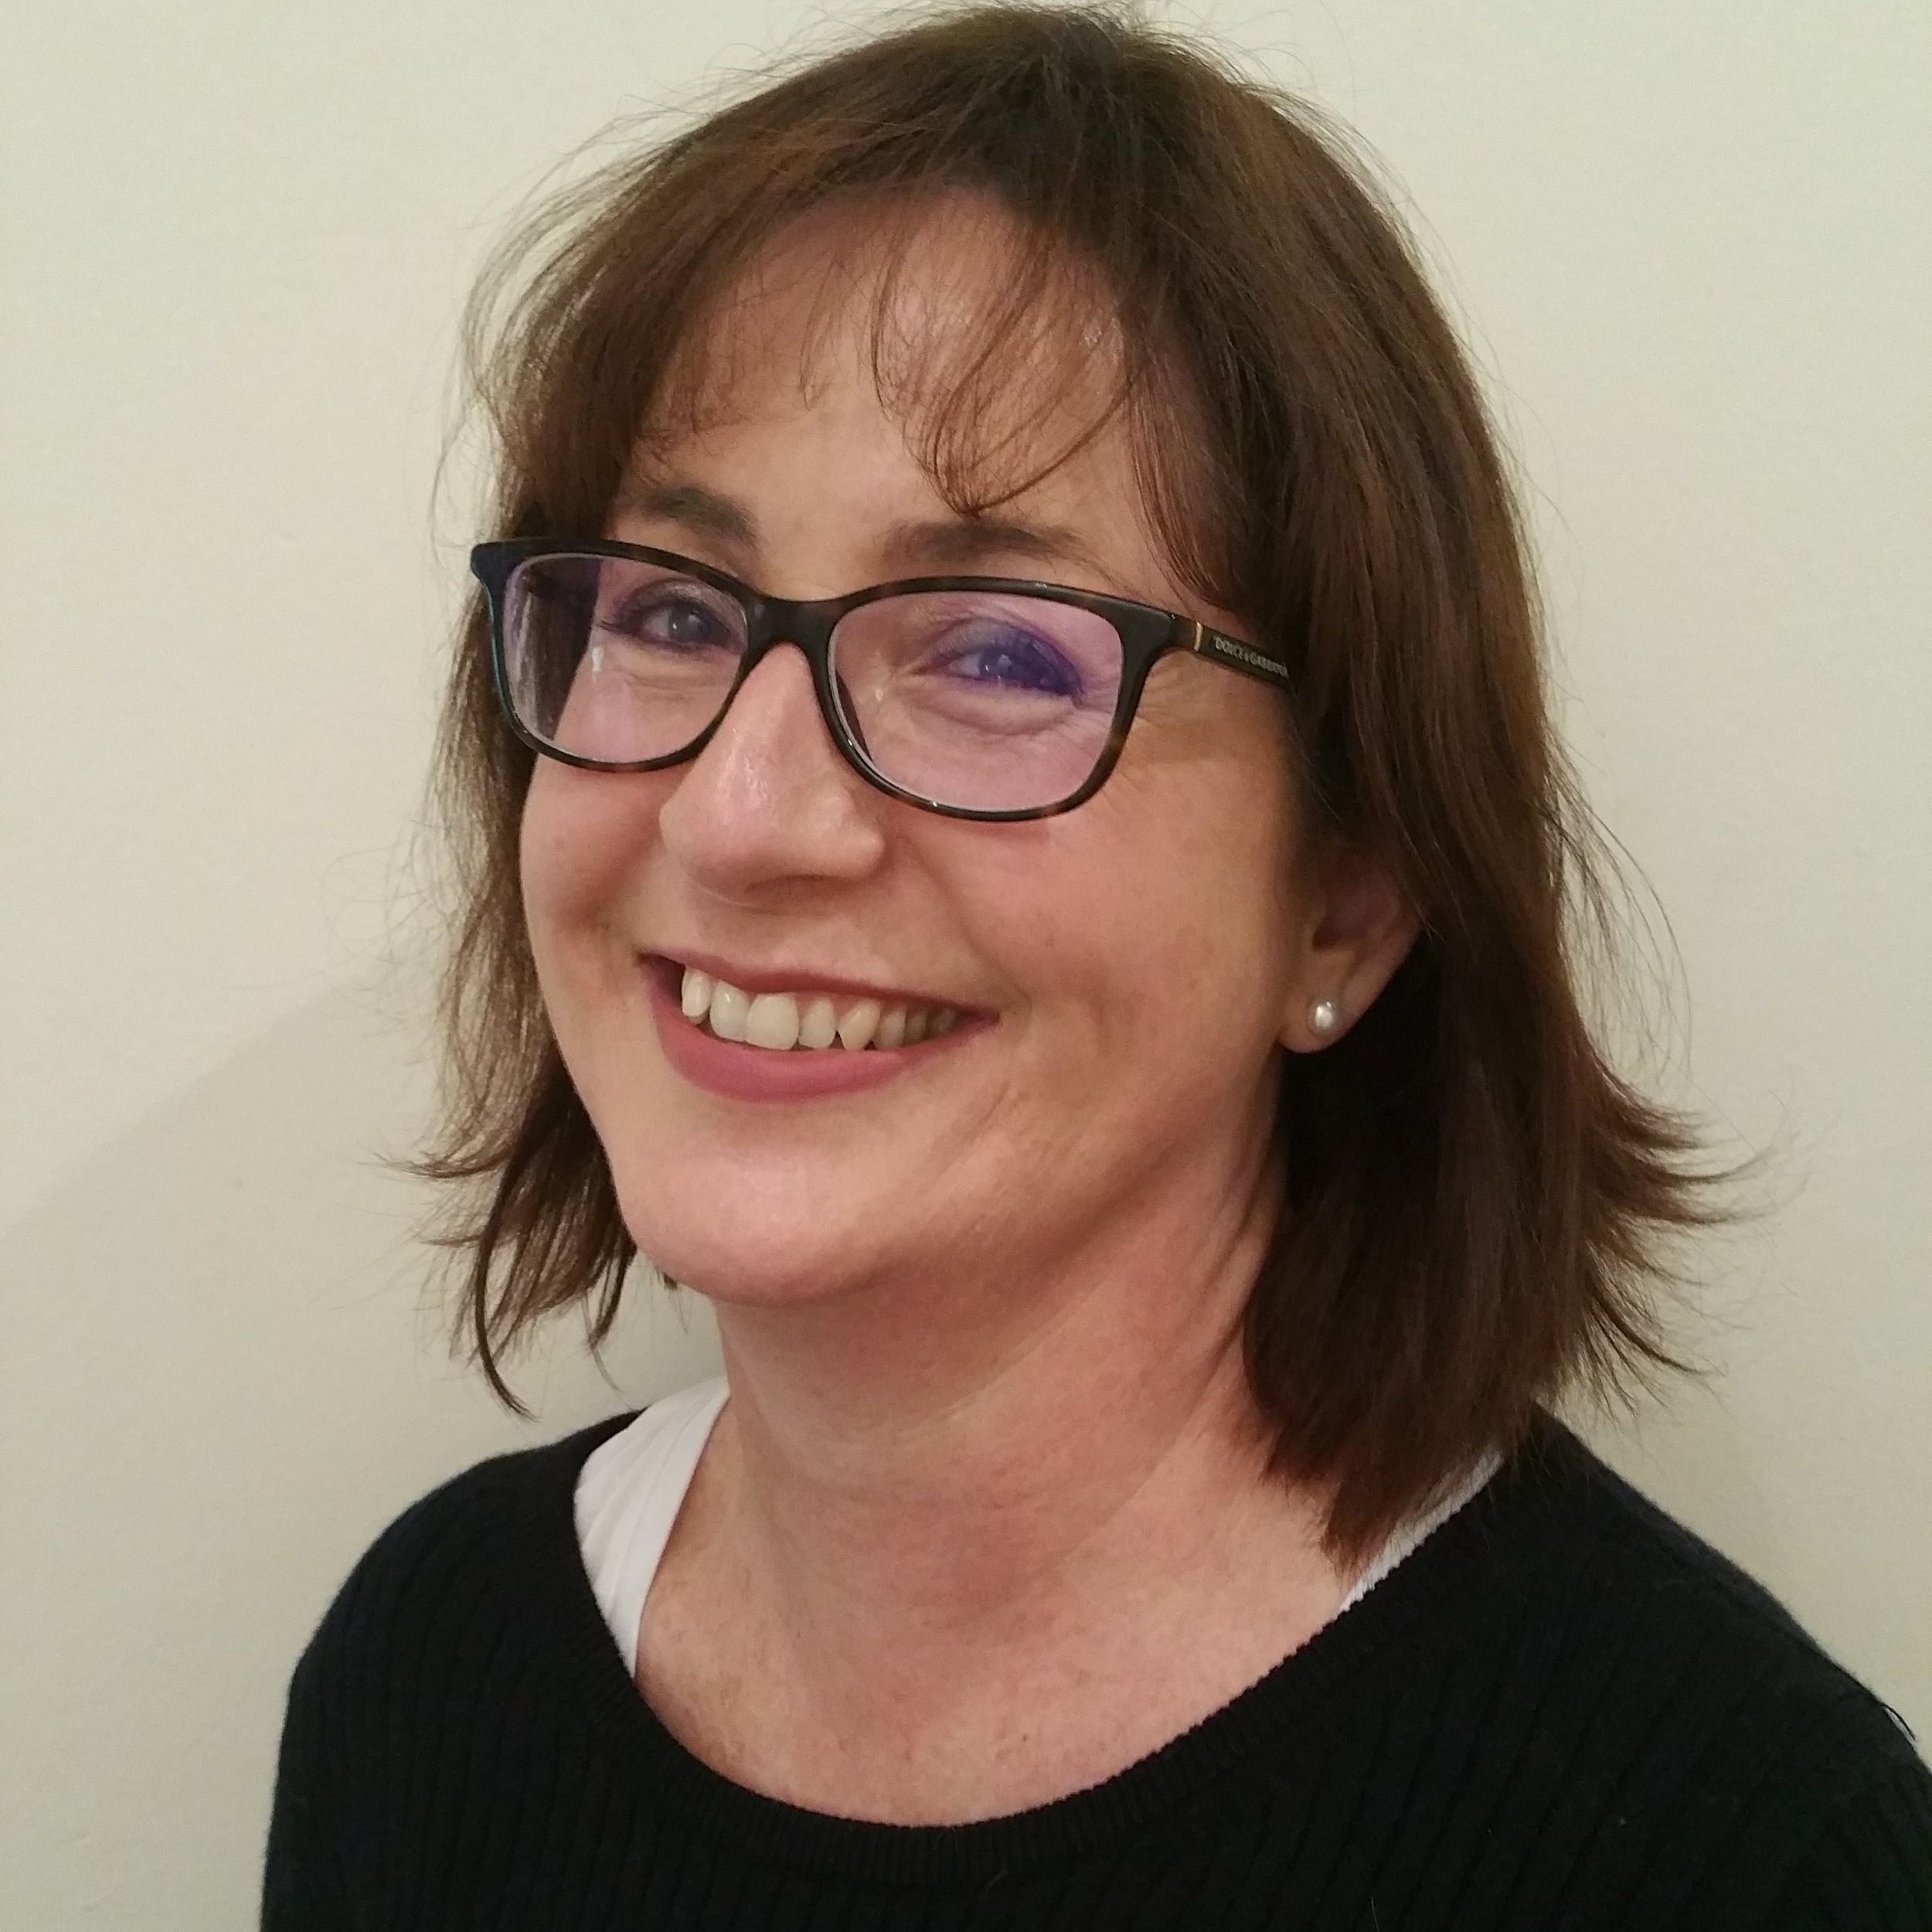 Jane Kenny  is a community engagement and partnerships specialist. A former teacher, she has served as a judge at the  CBAA Awards  since 2015, and has experience in the fields of philanthropy, industrial relations and the law.